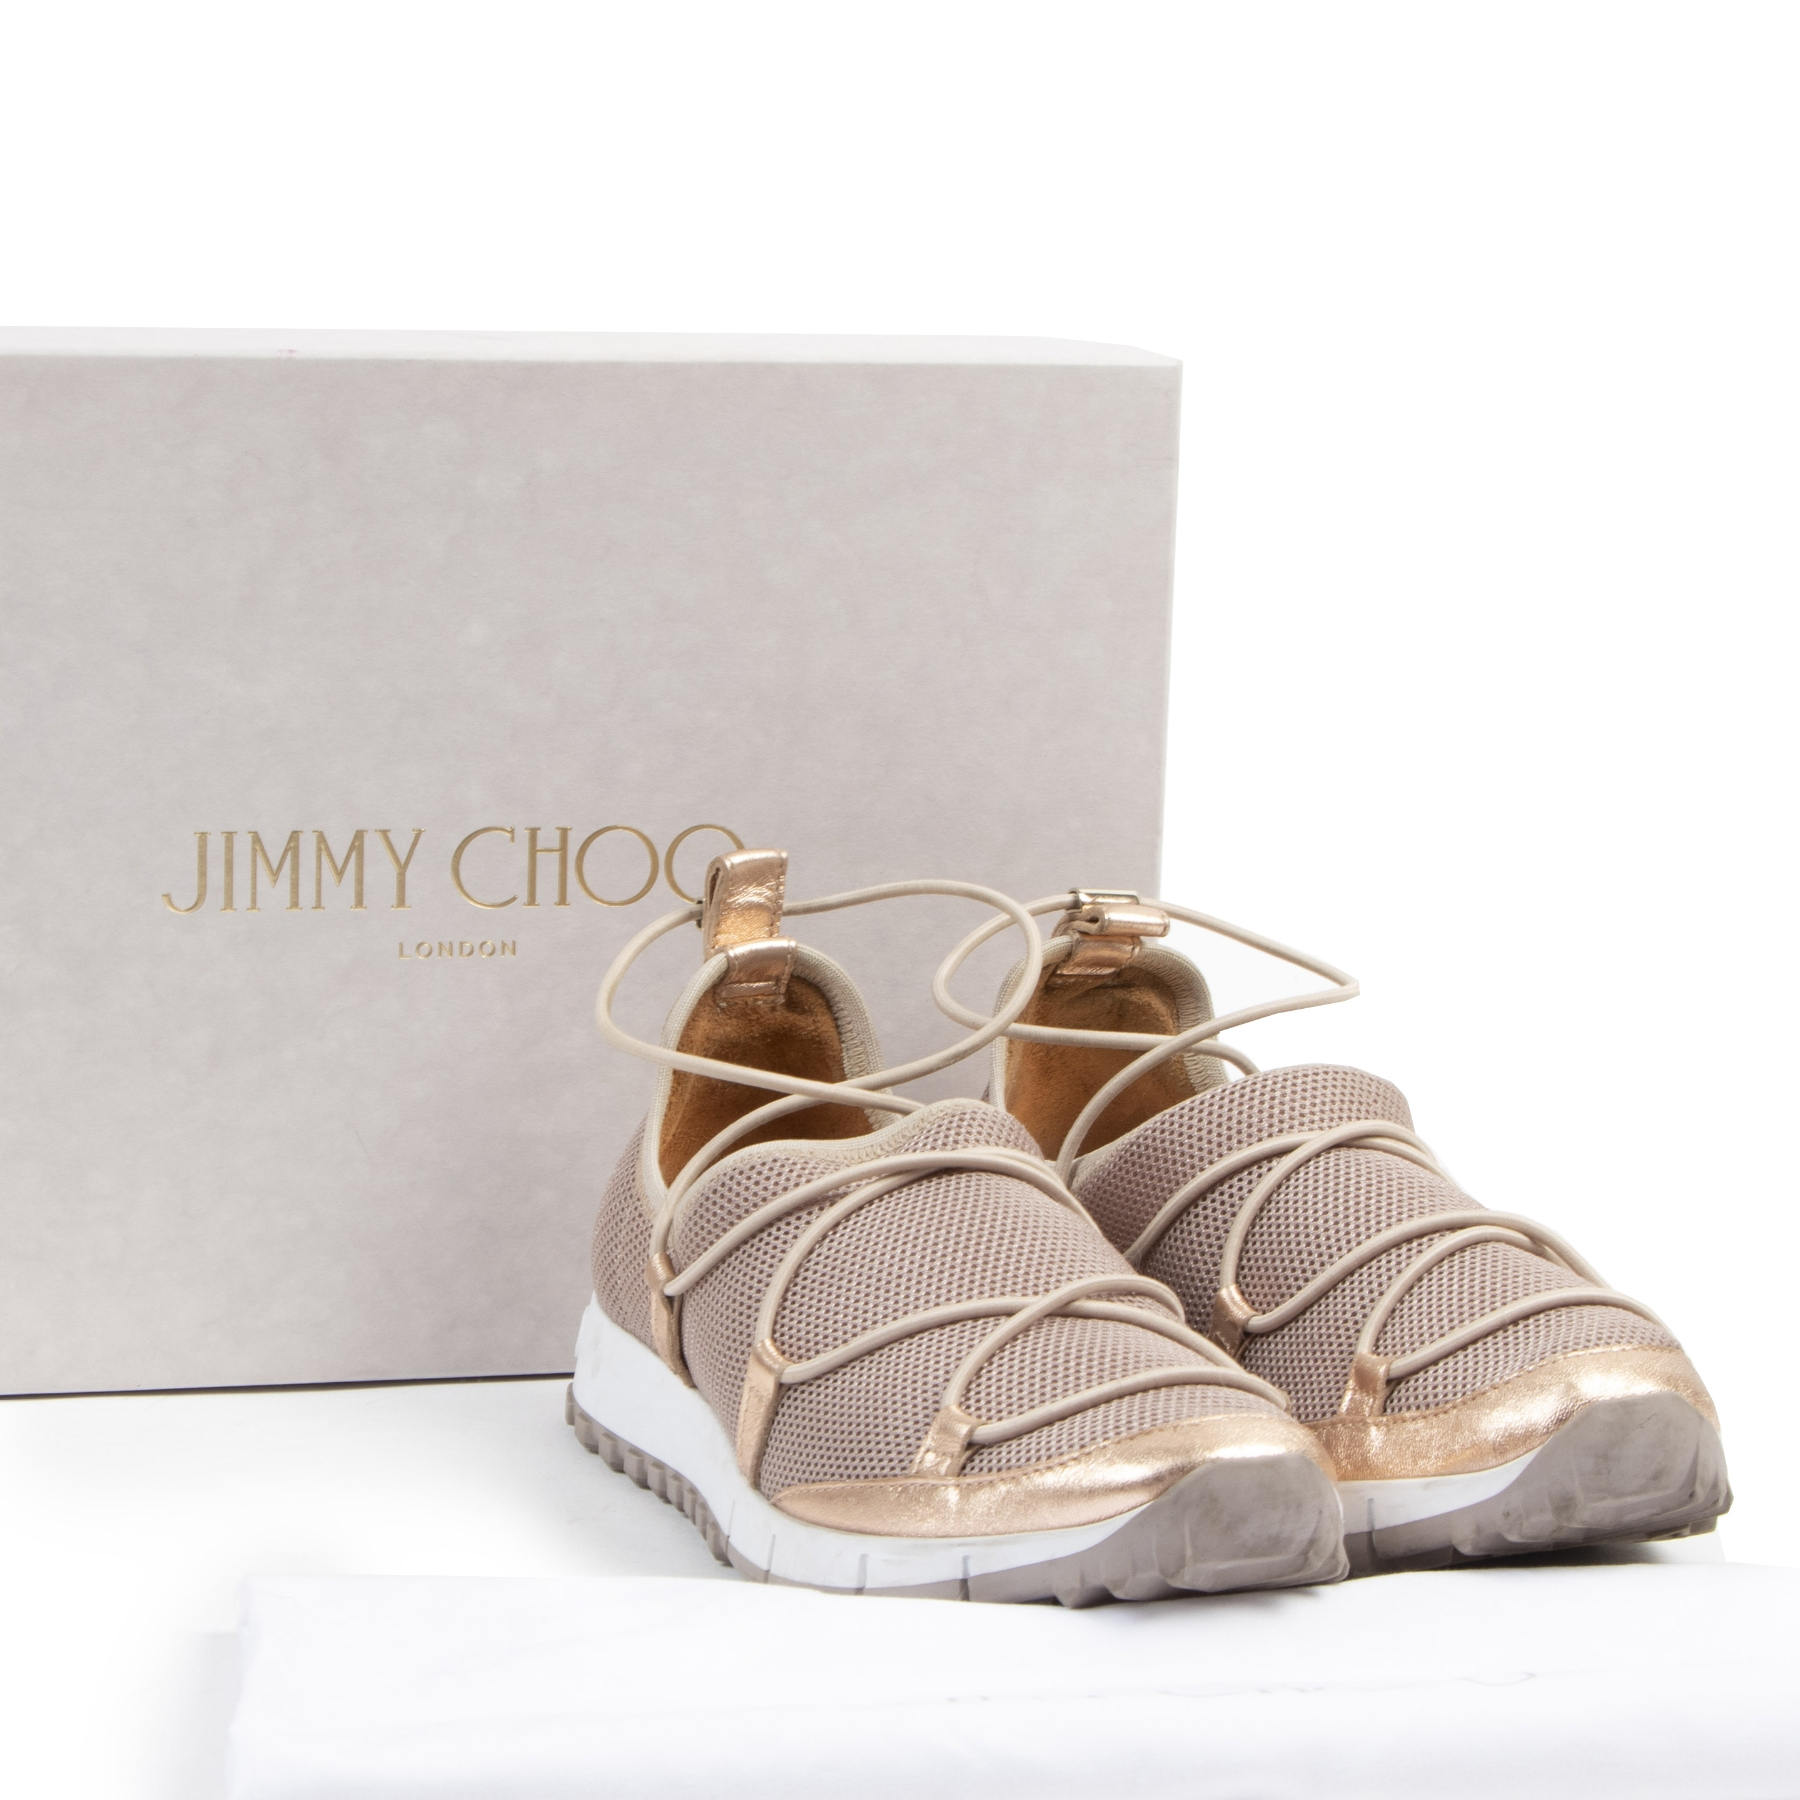 Authentic secondhand Jimmy Choo Nude Slip-On Sneaker - Size 36 designer sneakers fashion luxury vintage webshop